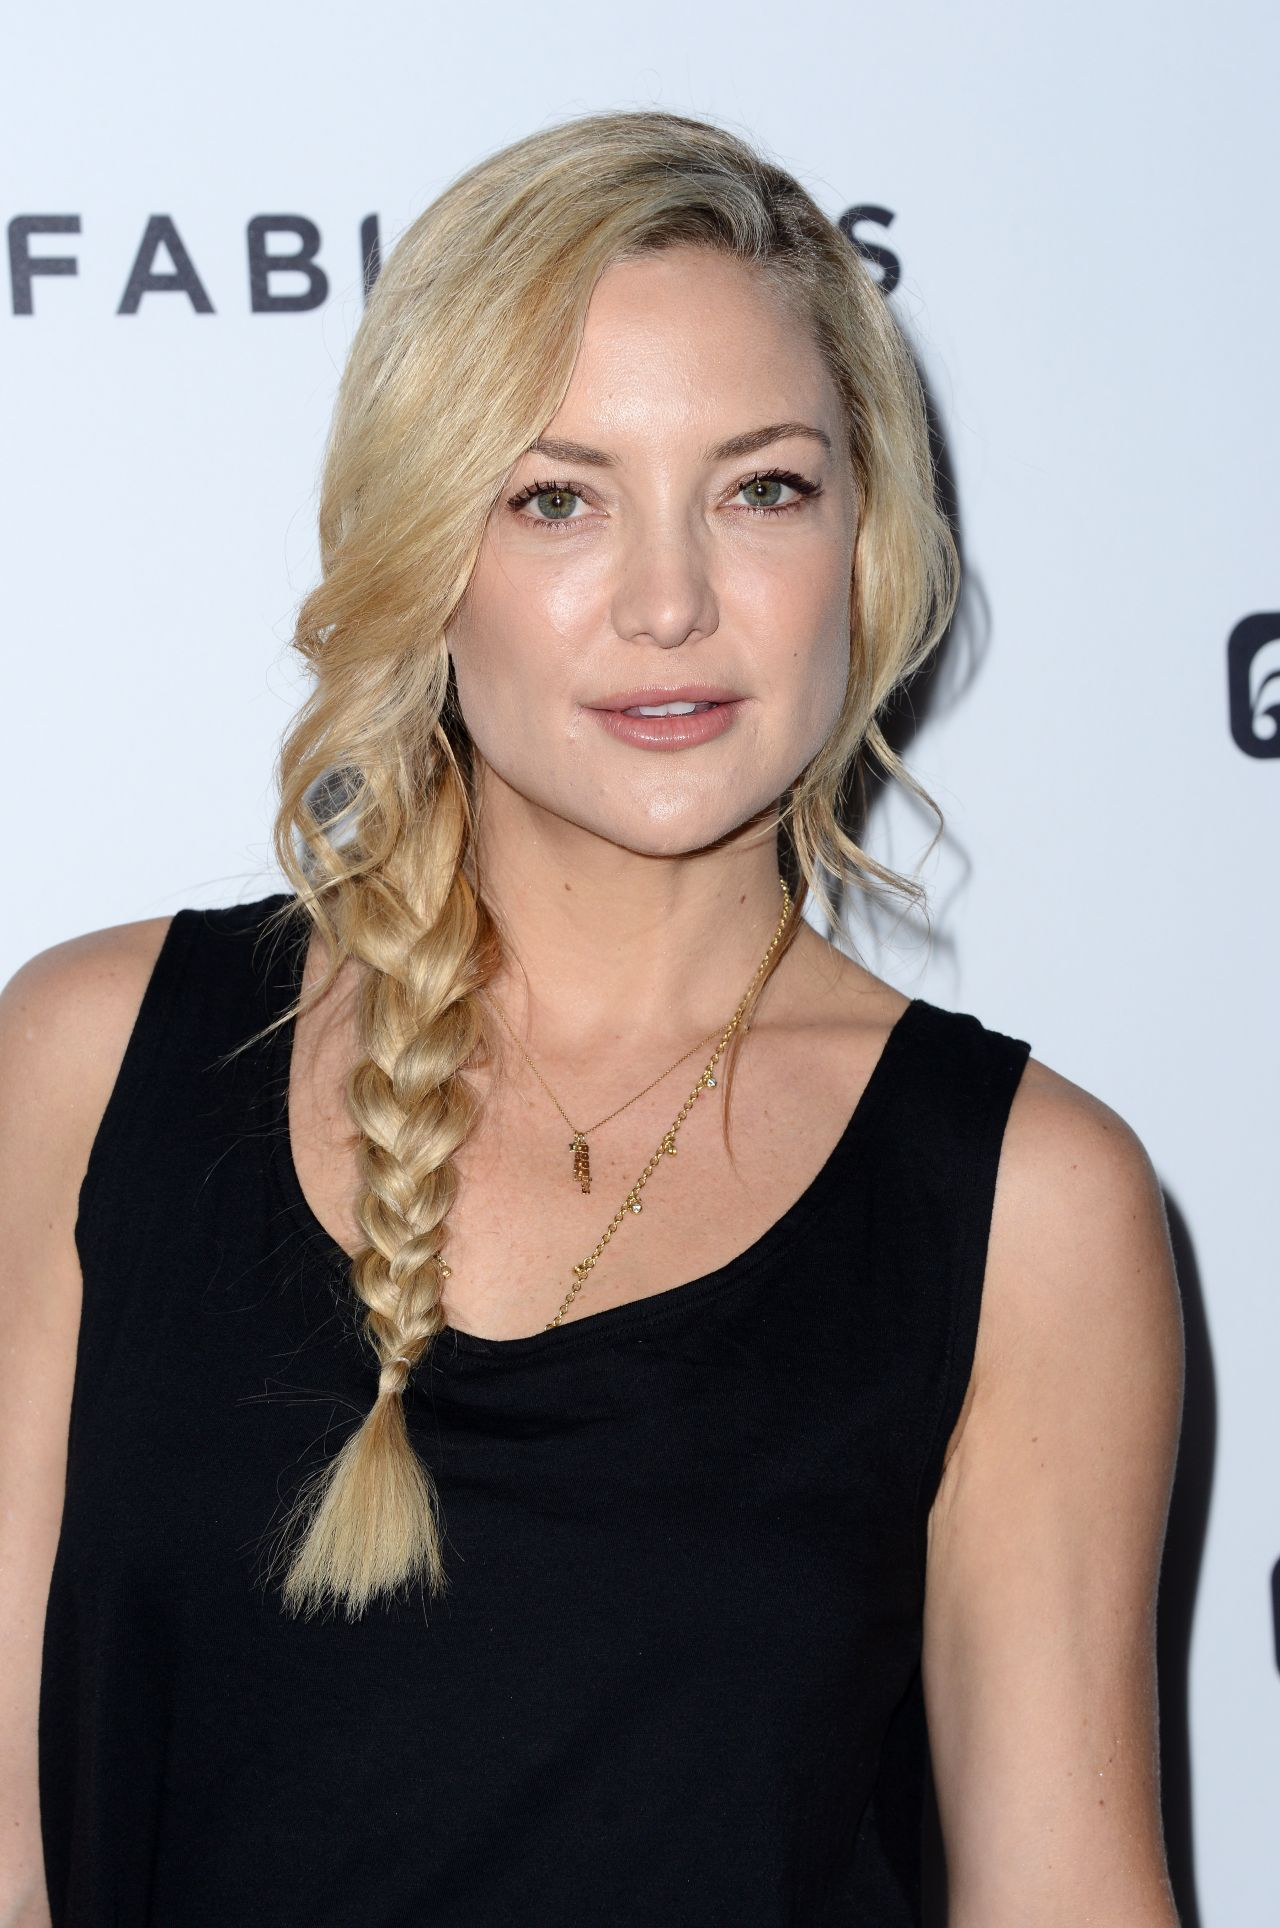 Kate Hudson - Fabletics Charity Event in Los Angeles ... Kate Hudson